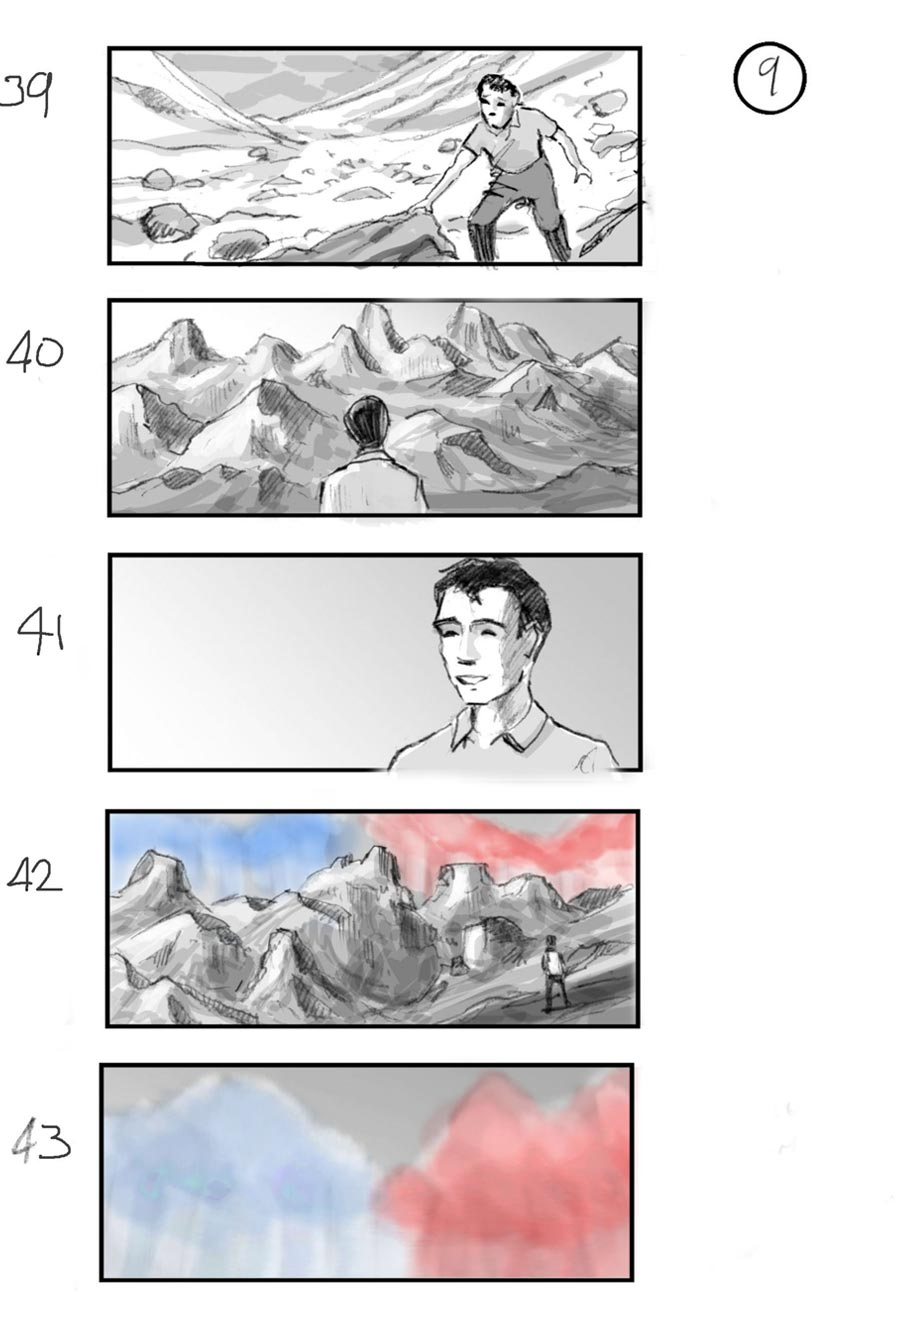 douglas ingram, storyboard art, IG commercial